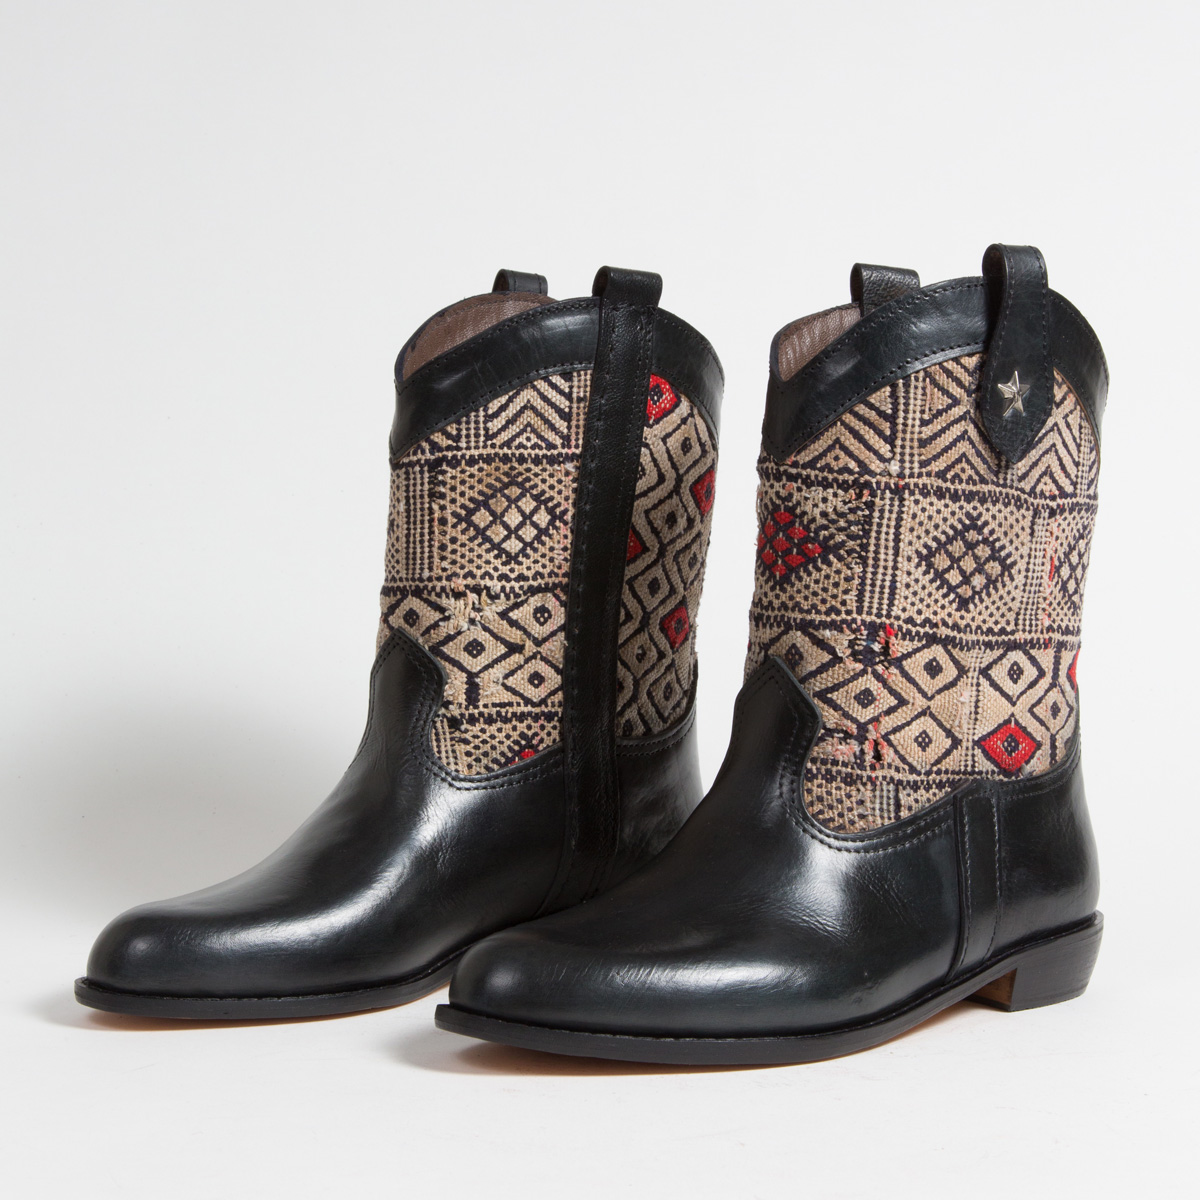 Bottines Kilim cuir mababouche artisanales (Réf. MN16-42)